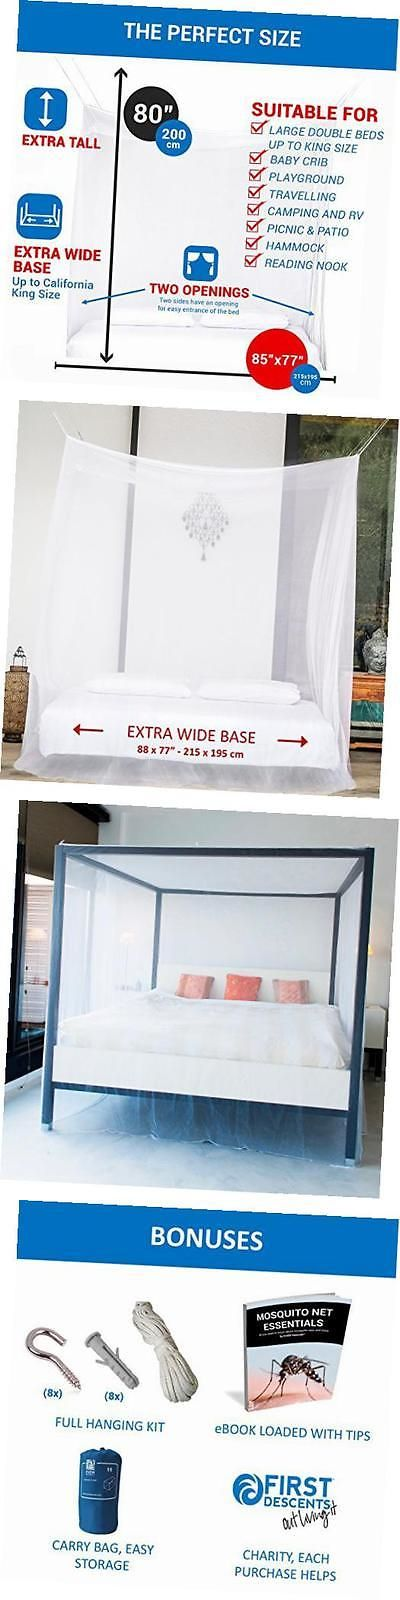 Canopies and Netting 48090: Premium Mosquito Net For Extra Large Canopy Bed By , Two Openings, Hanging Kit, -> BUY IT NOW ONLY: $30.54 on eBay!